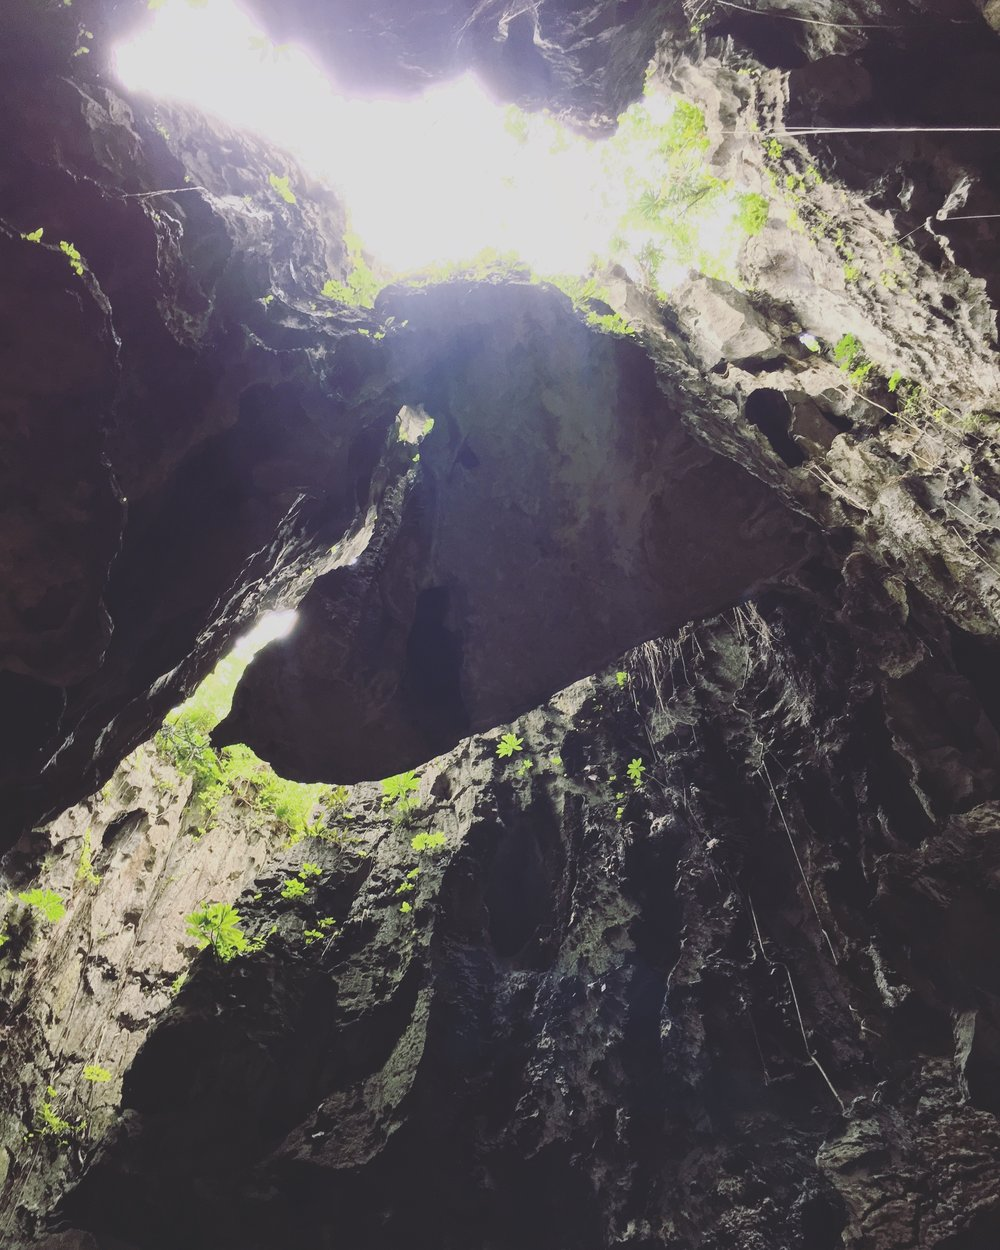 "Climbed through some cool limestone caves in Kampot with Avatar-esque floating rocks. Quote from our awesome guide: ""that'll fall one day."" Cool. Didn't realize how much I missed this! 🧗🏼‍♀️ #armspumped   #caveclimbing   #rockclimbing   #kampot   #cambodia   #seasiatravel   #solofemaletravel   #yearoftravel   #travelblog   #pathunwritten"